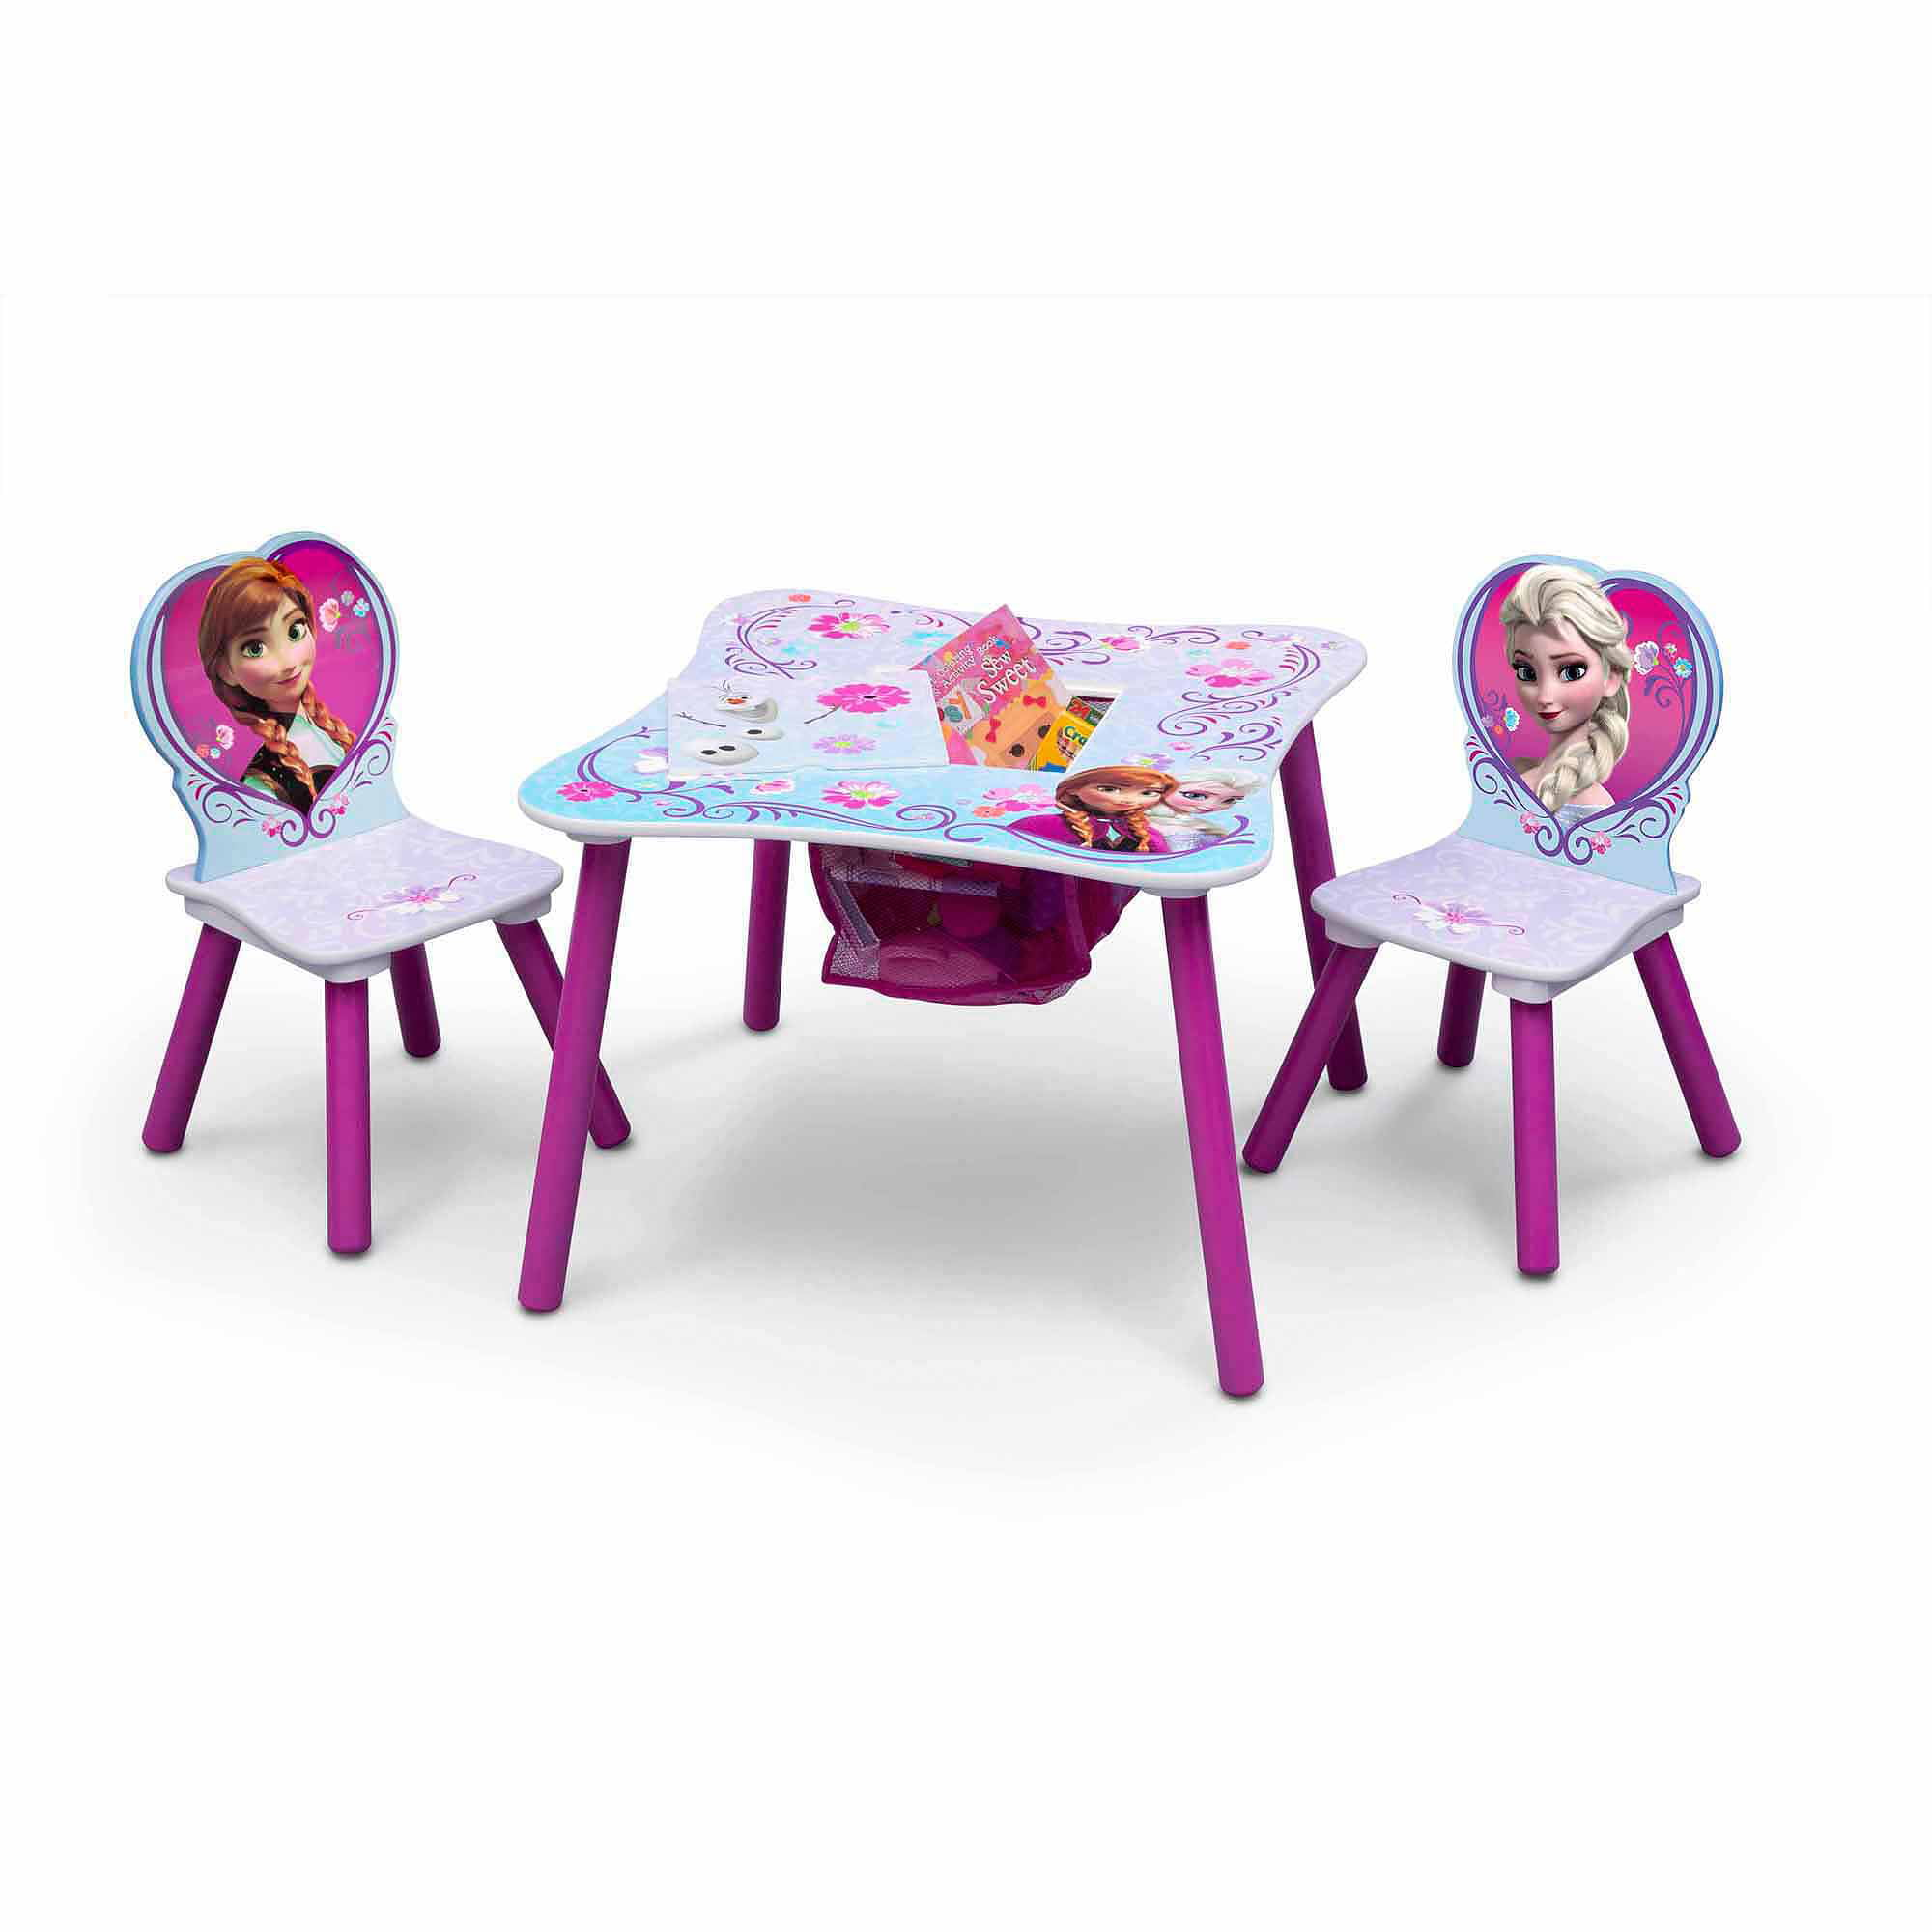 Disney Frozen Table and Chair Set with Storage Walmart – Girls Table and Chair